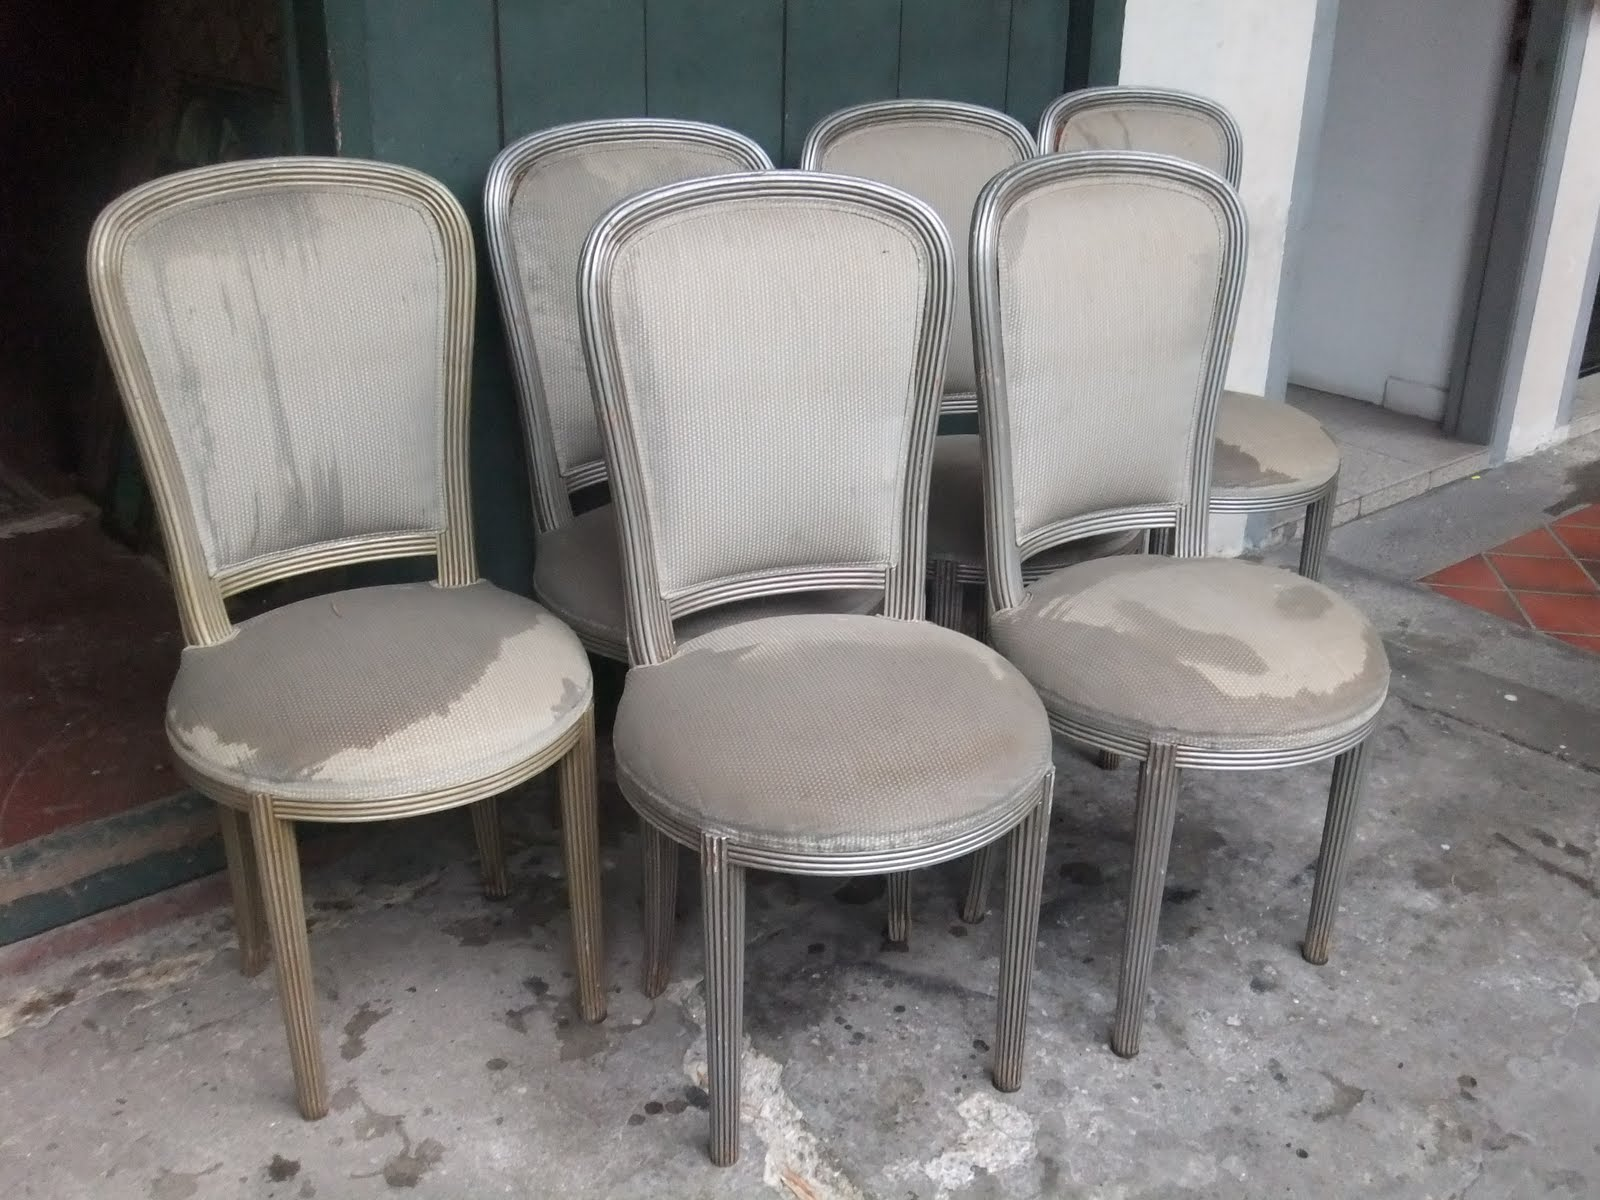 Silver Dining Chair Cushions Pub Table And Chairs Ikea Furniture Finds The Emergence Of Similar Styles